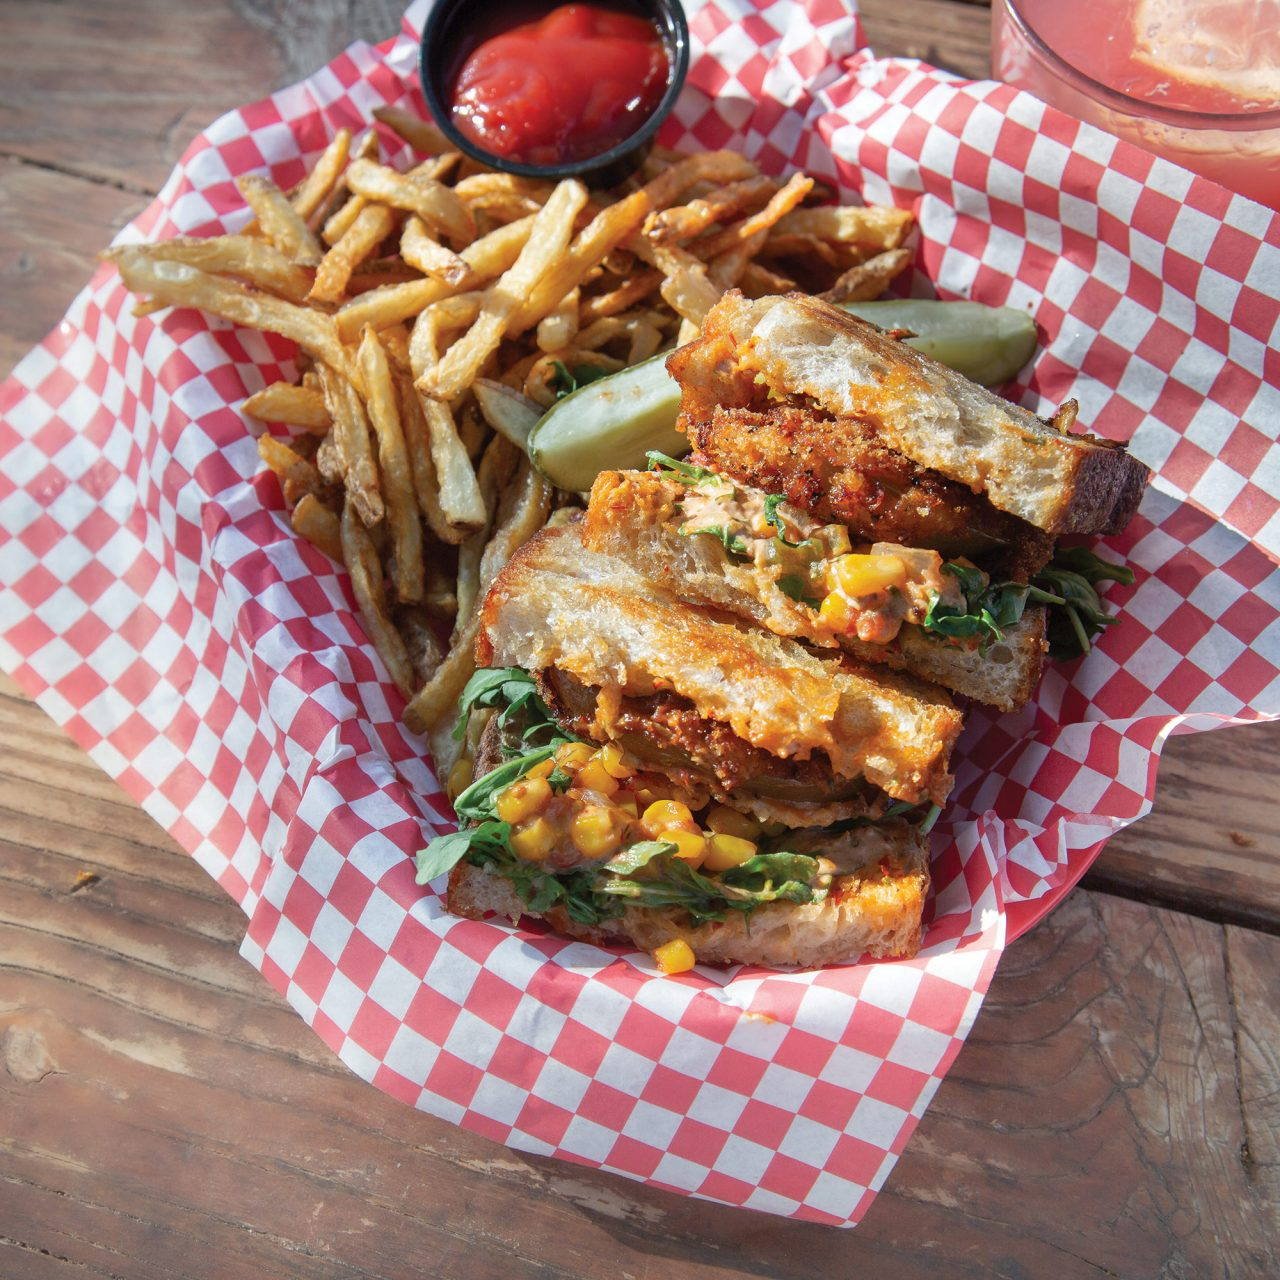 Editors' Picks for Best of the Valley 2021 in Food & Drink